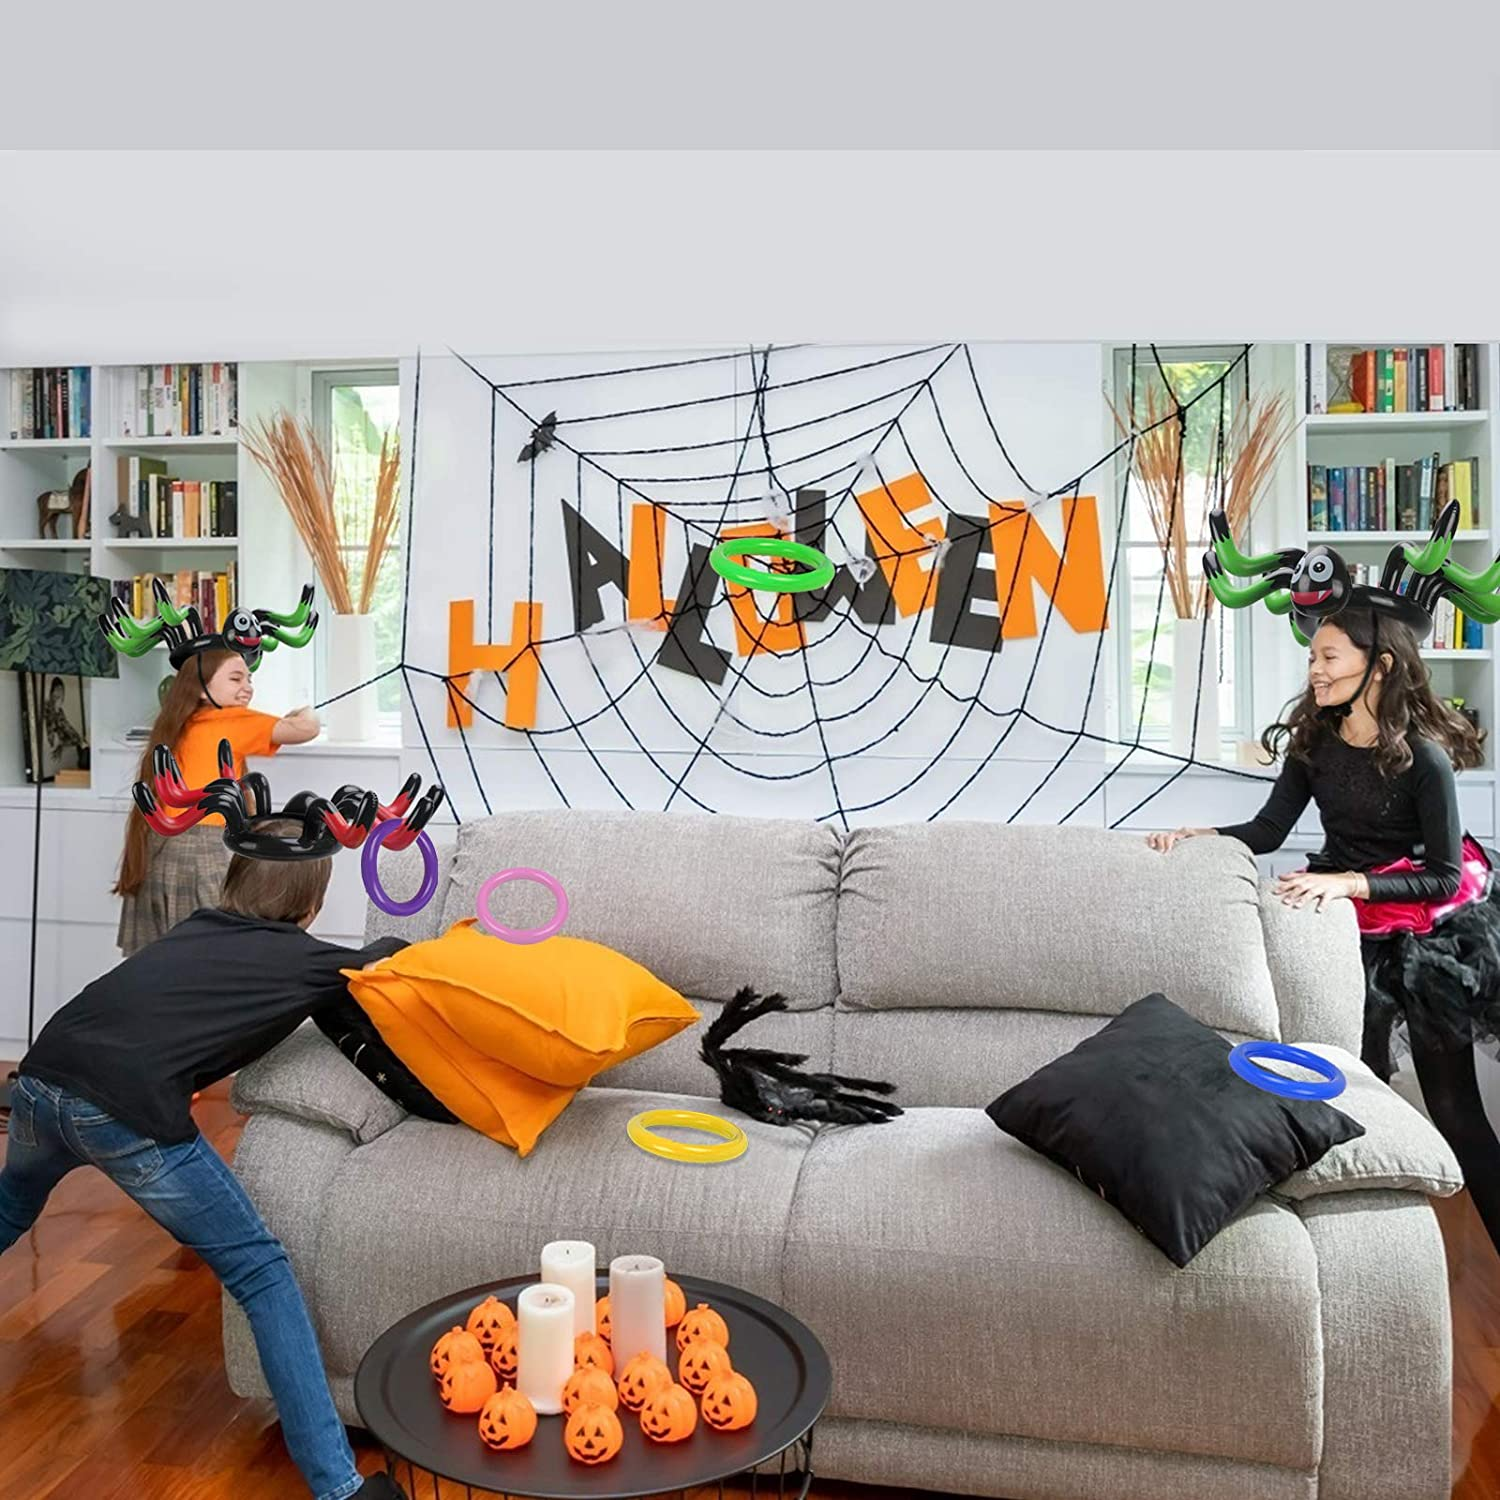 ZERHOK Cappello Gonfiabile delle Streghe,Halloween Witches Hat Toss Game Target Toy con 6pcs Anelli da Lancio Colorati per Bambini Halloween Carnival Party Indoor Outdoor Garden Game